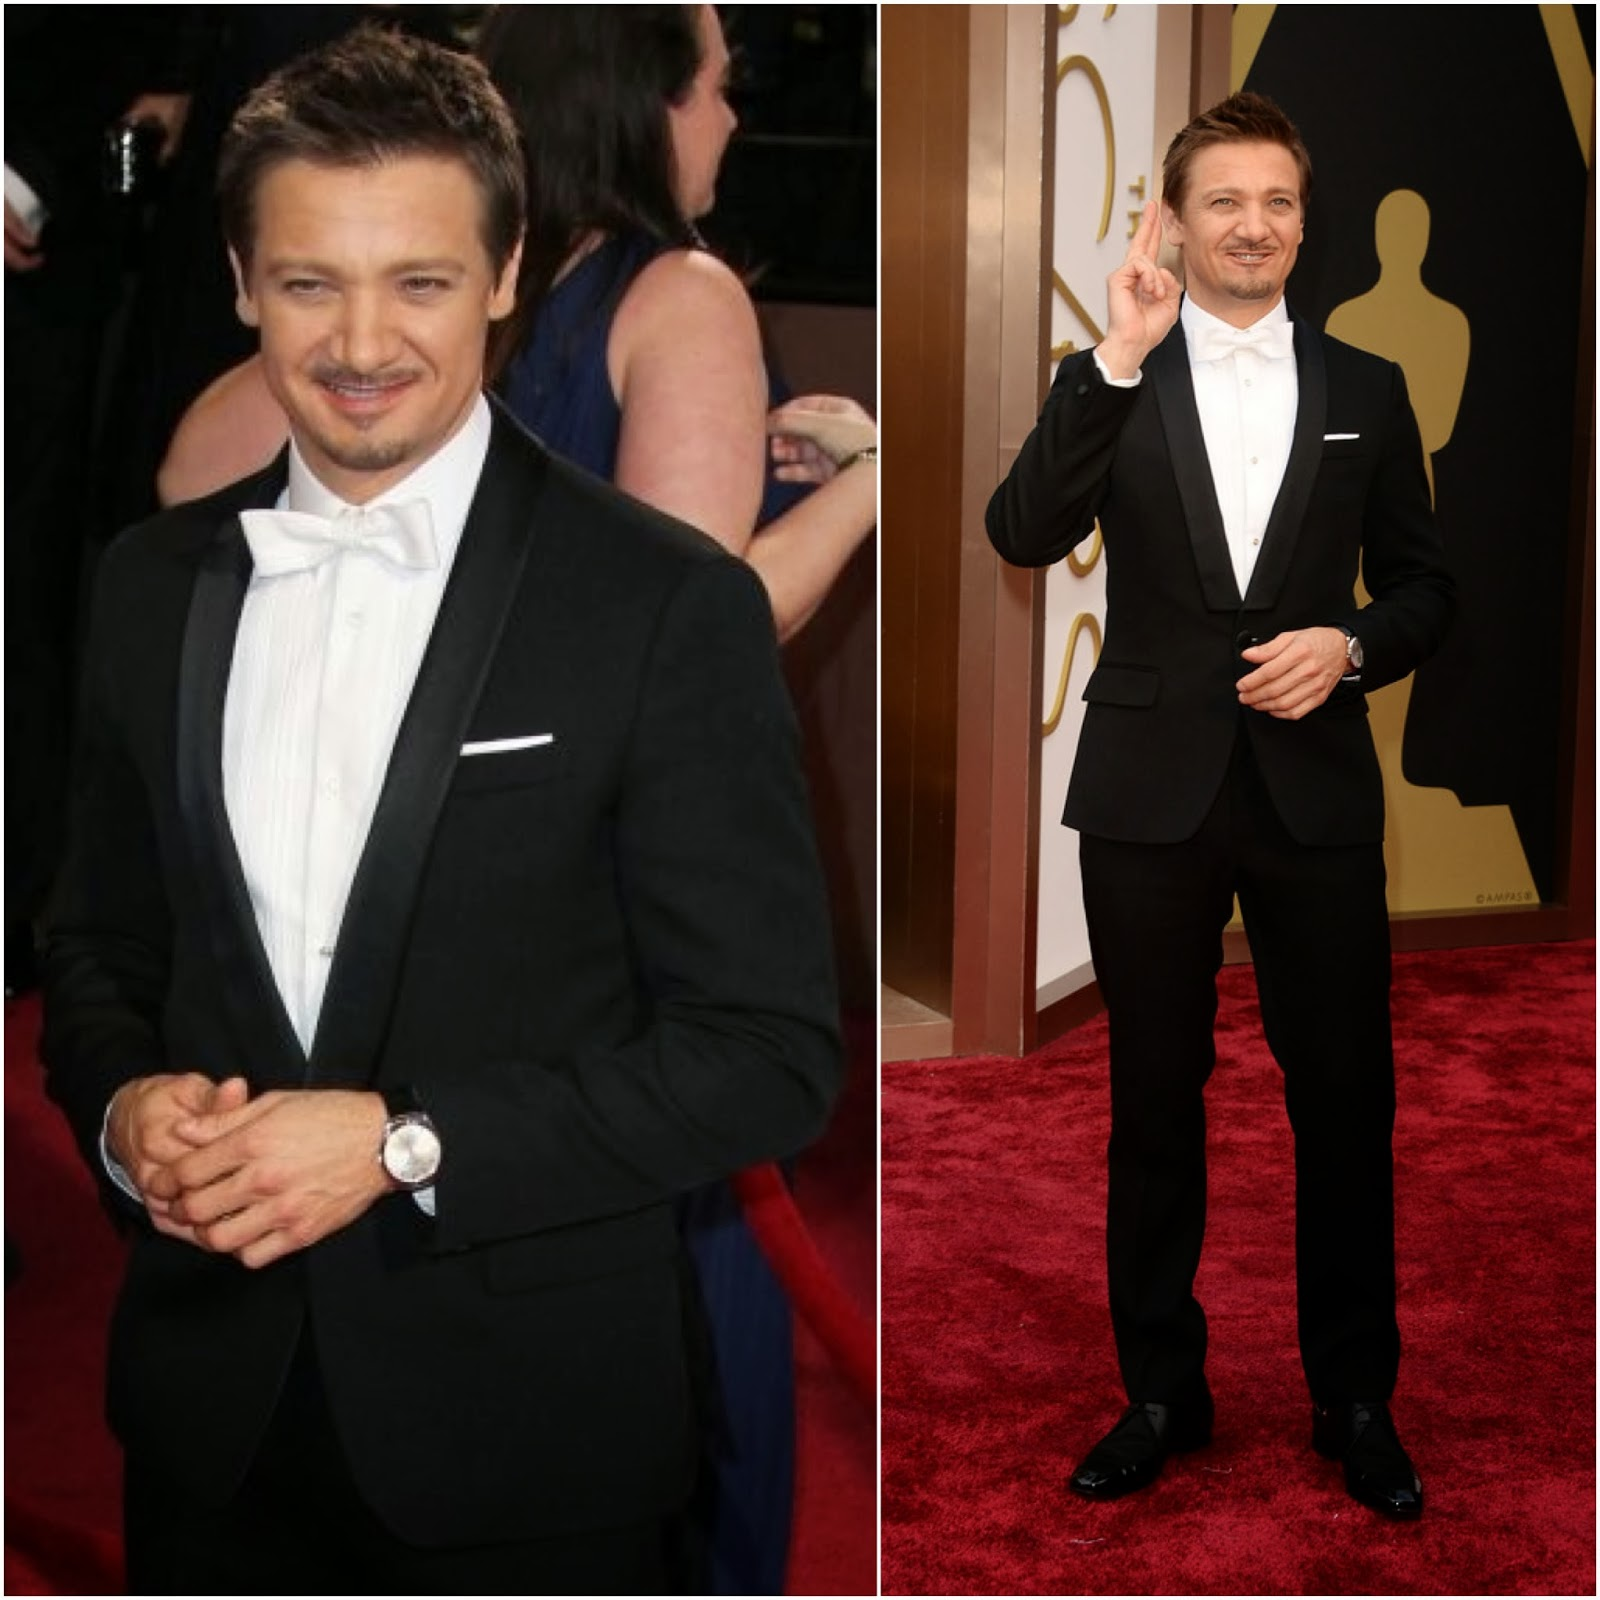 Jeremy Renner in Givenchy by Riccardo Tisci - 86th Annual Academy Awards